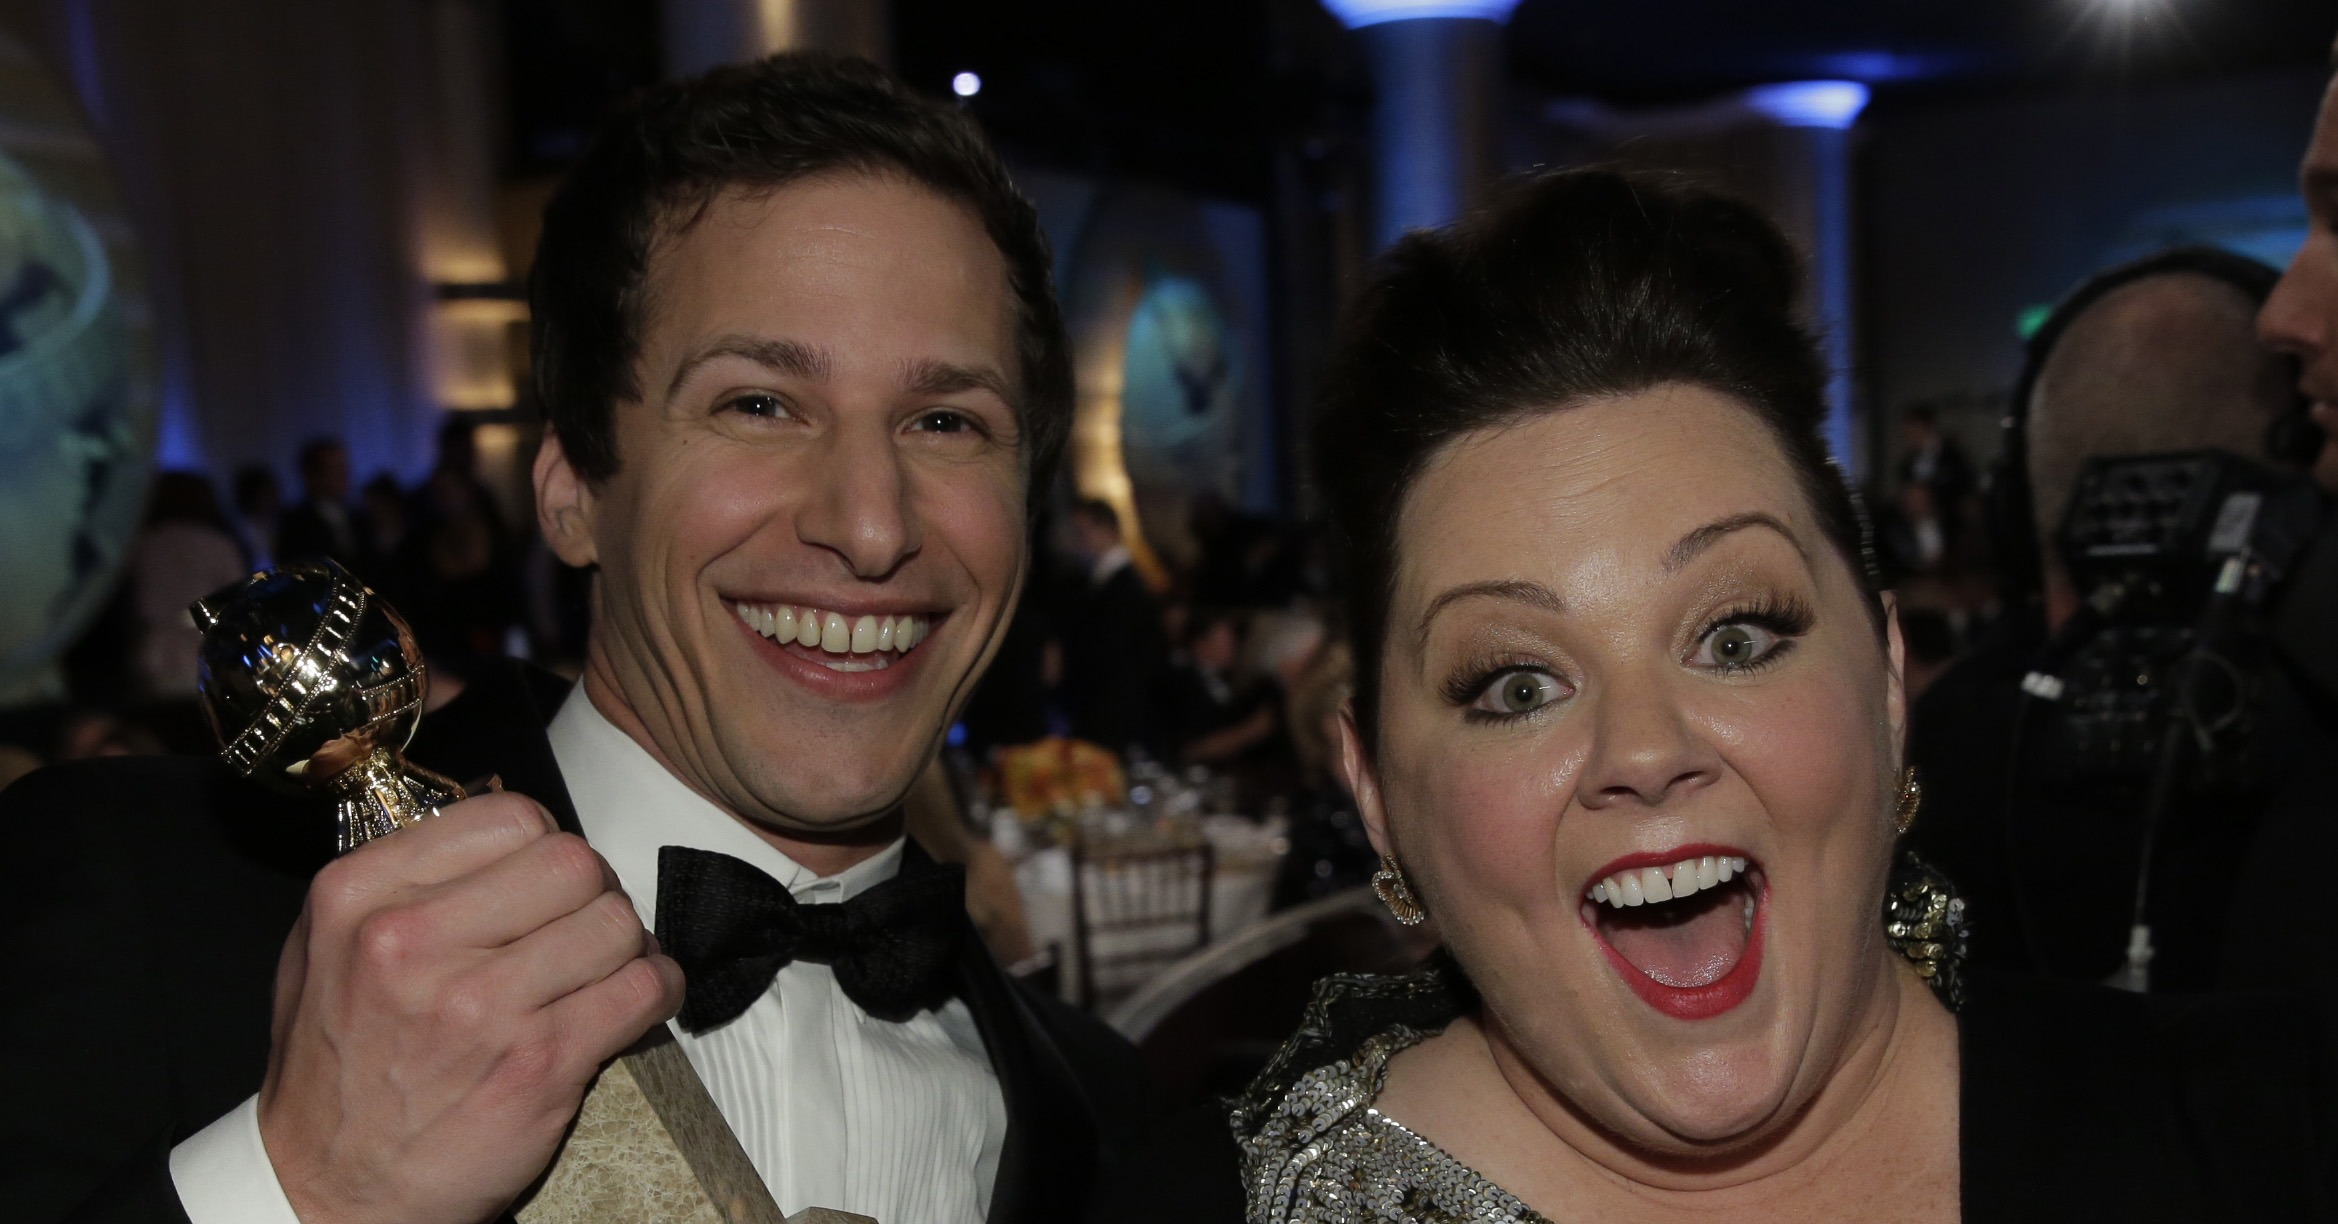 Melissa-McCarthy-helped-Andy-Samberg-celebrate-his-big-win.jpg